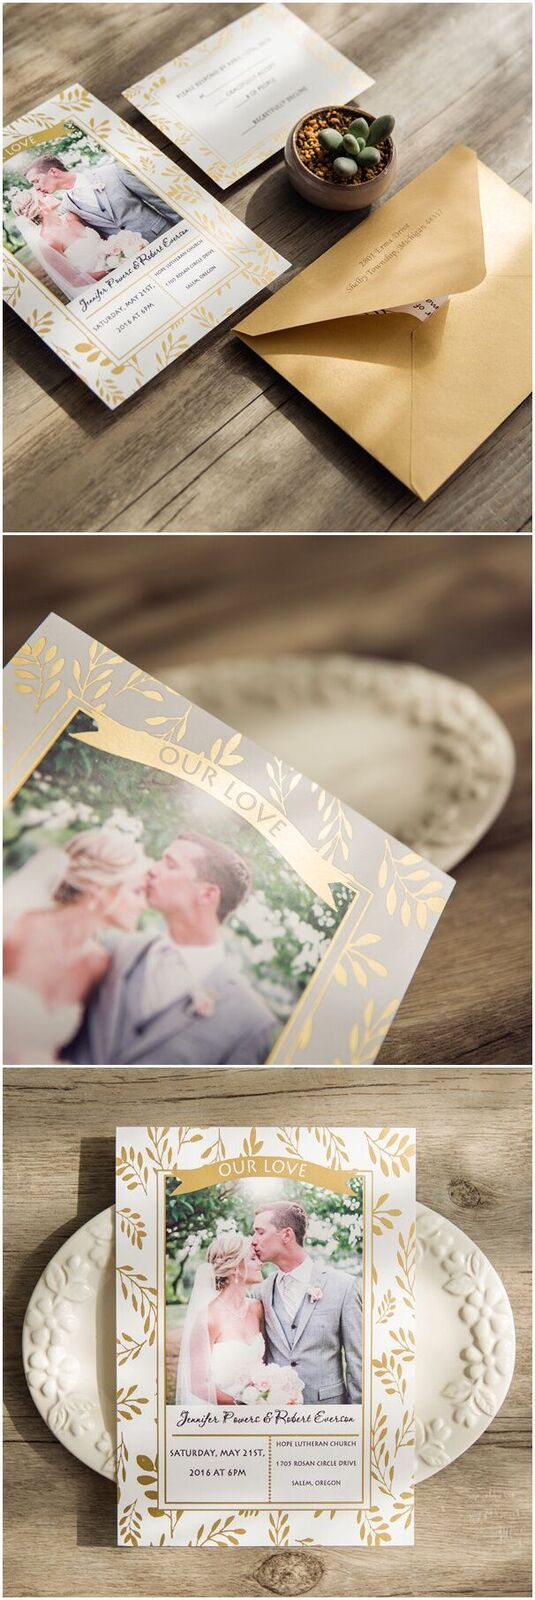 foiled leaves photo themed wedding invitations for